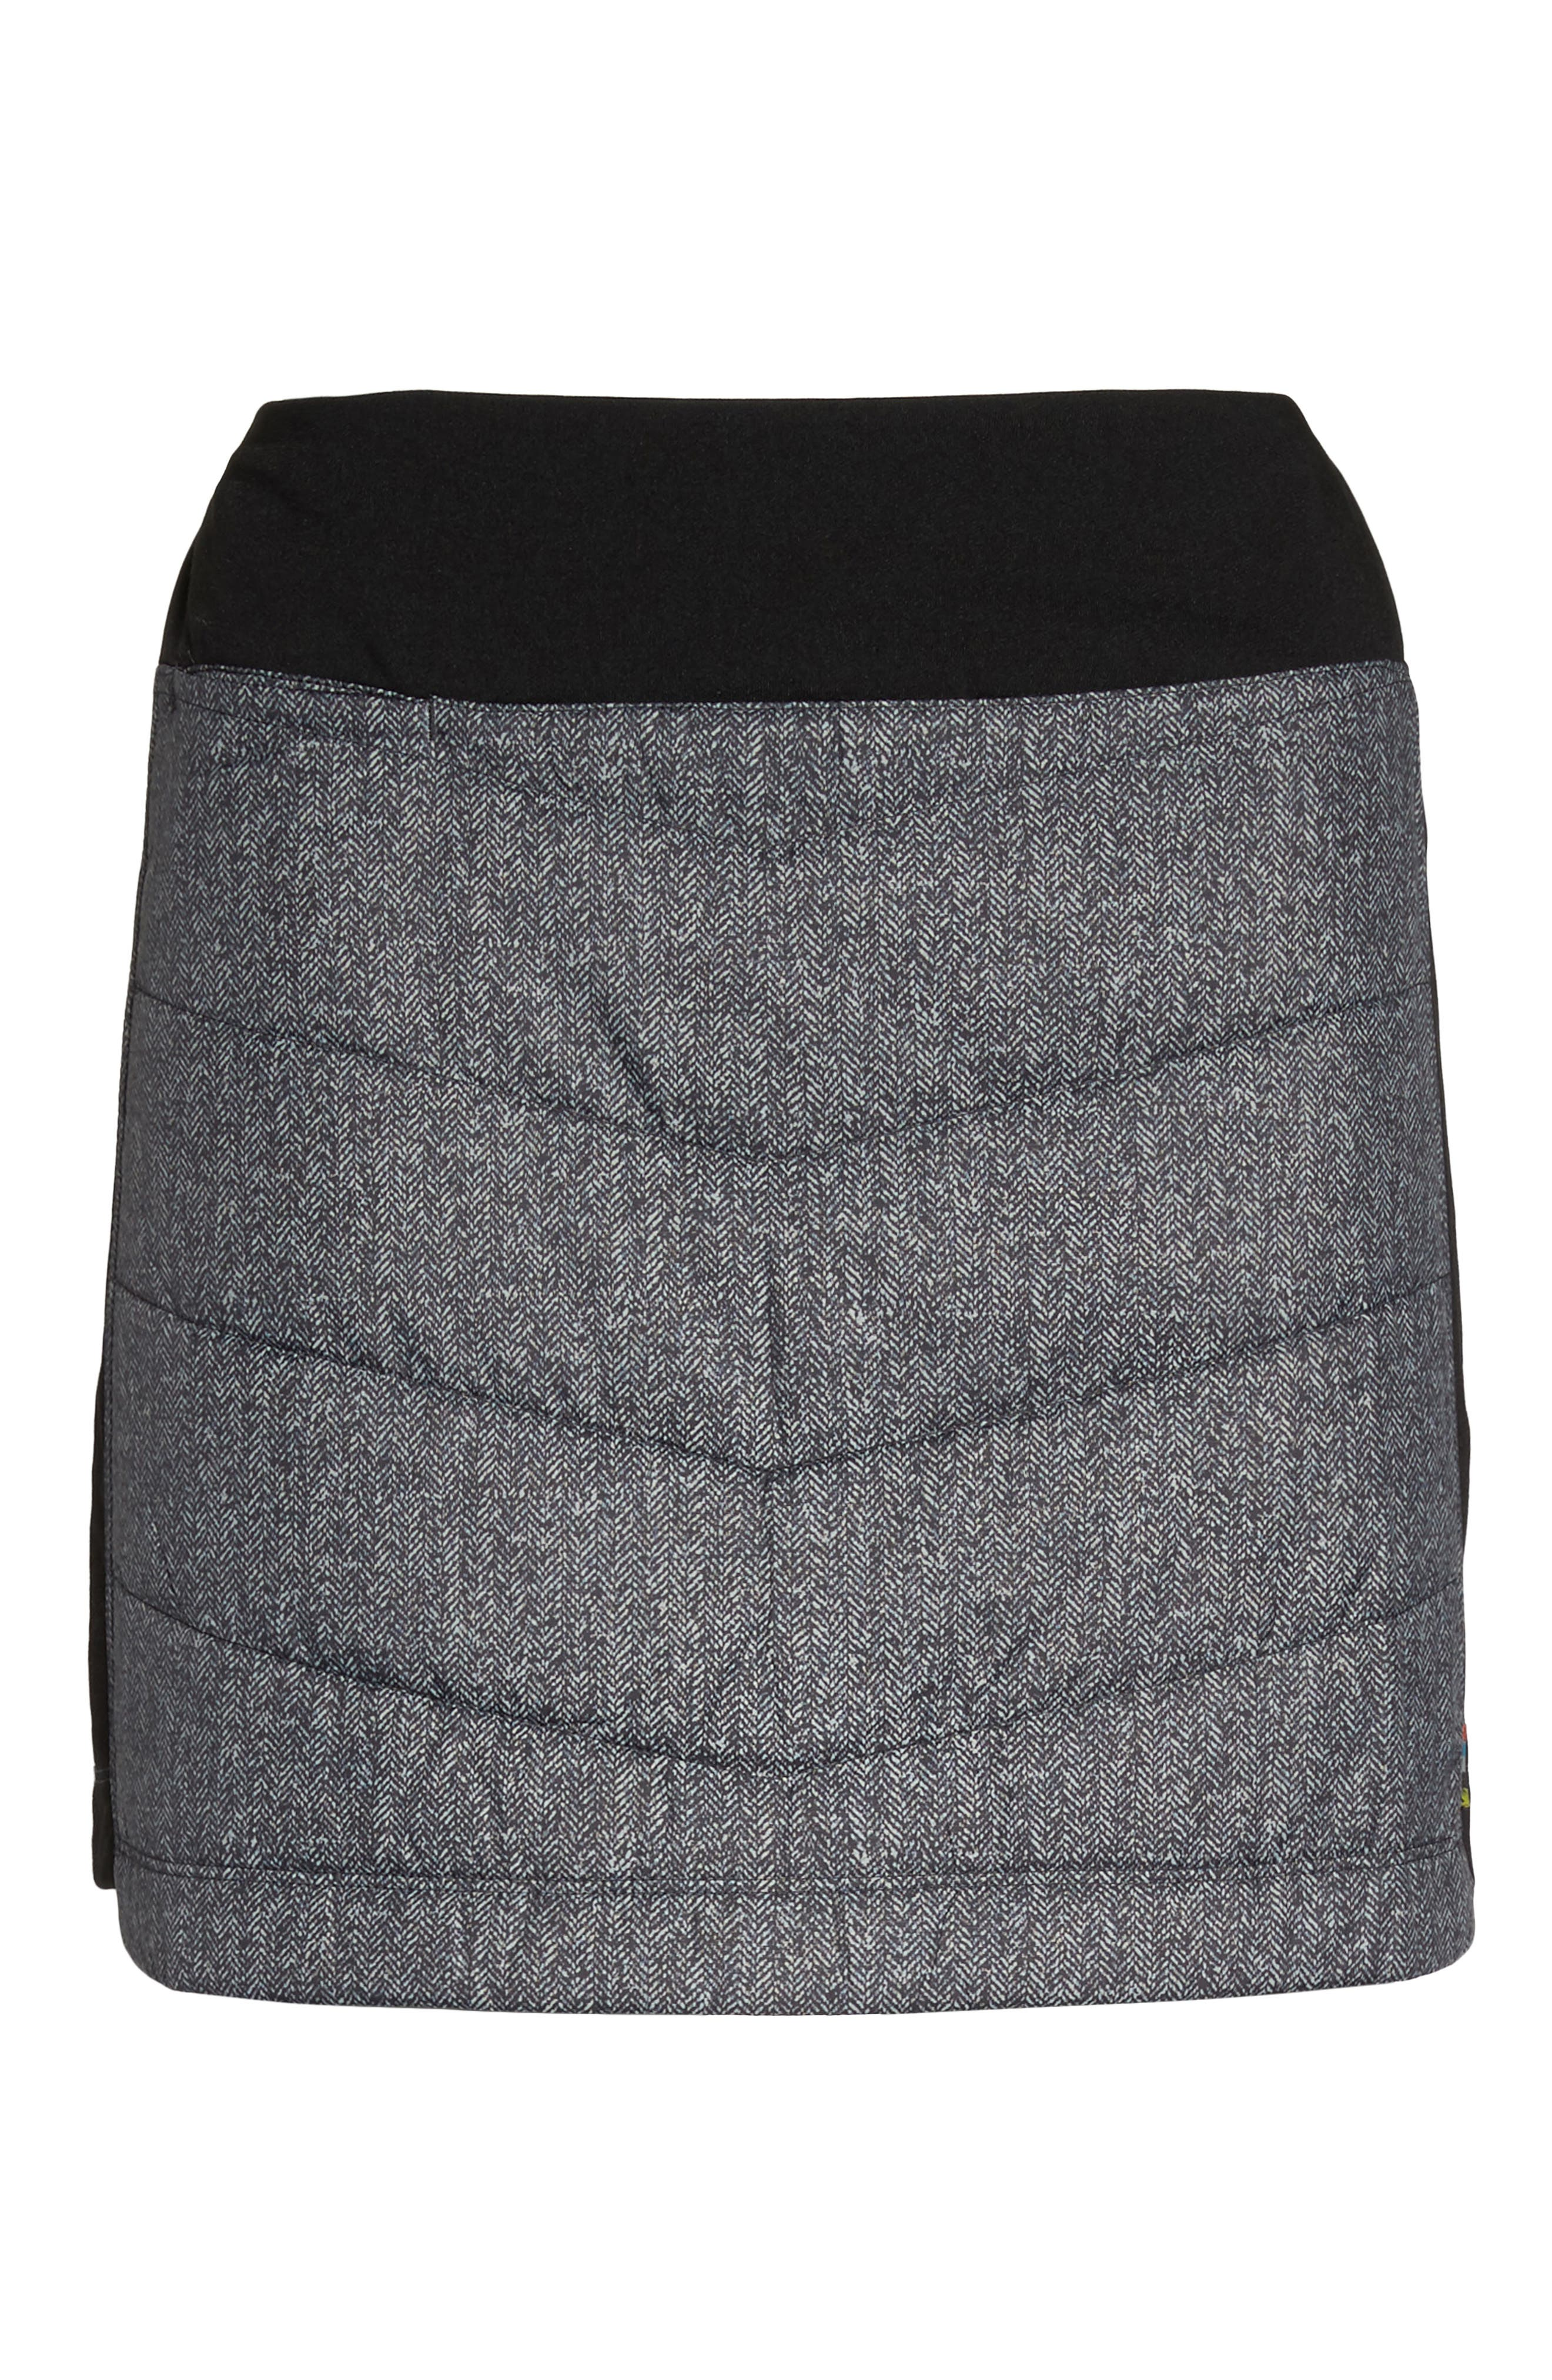 Propulsion 60 Quilted Skirt,                             Alternate thumbnail 7, color,                             001